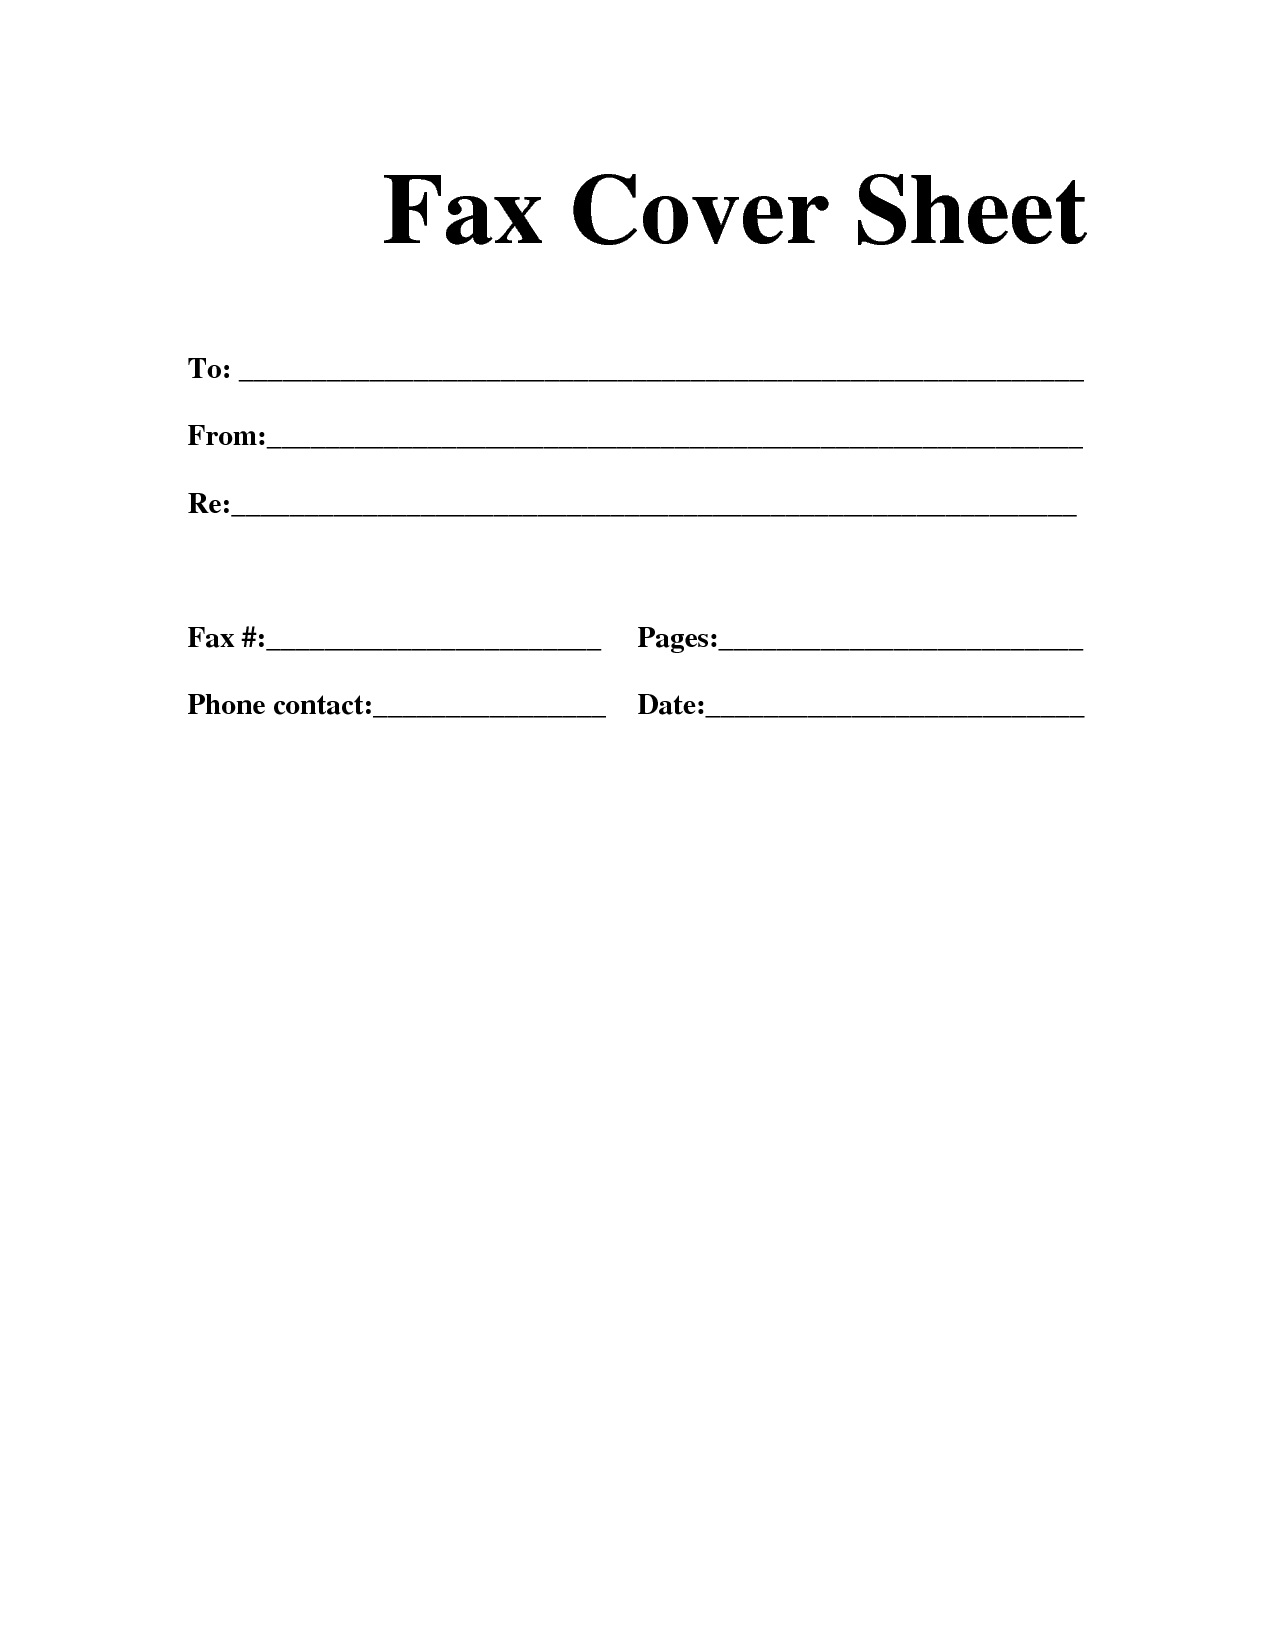 Blank Fax Cover Letter sheets for FaxCoverSheetResumeTemplate